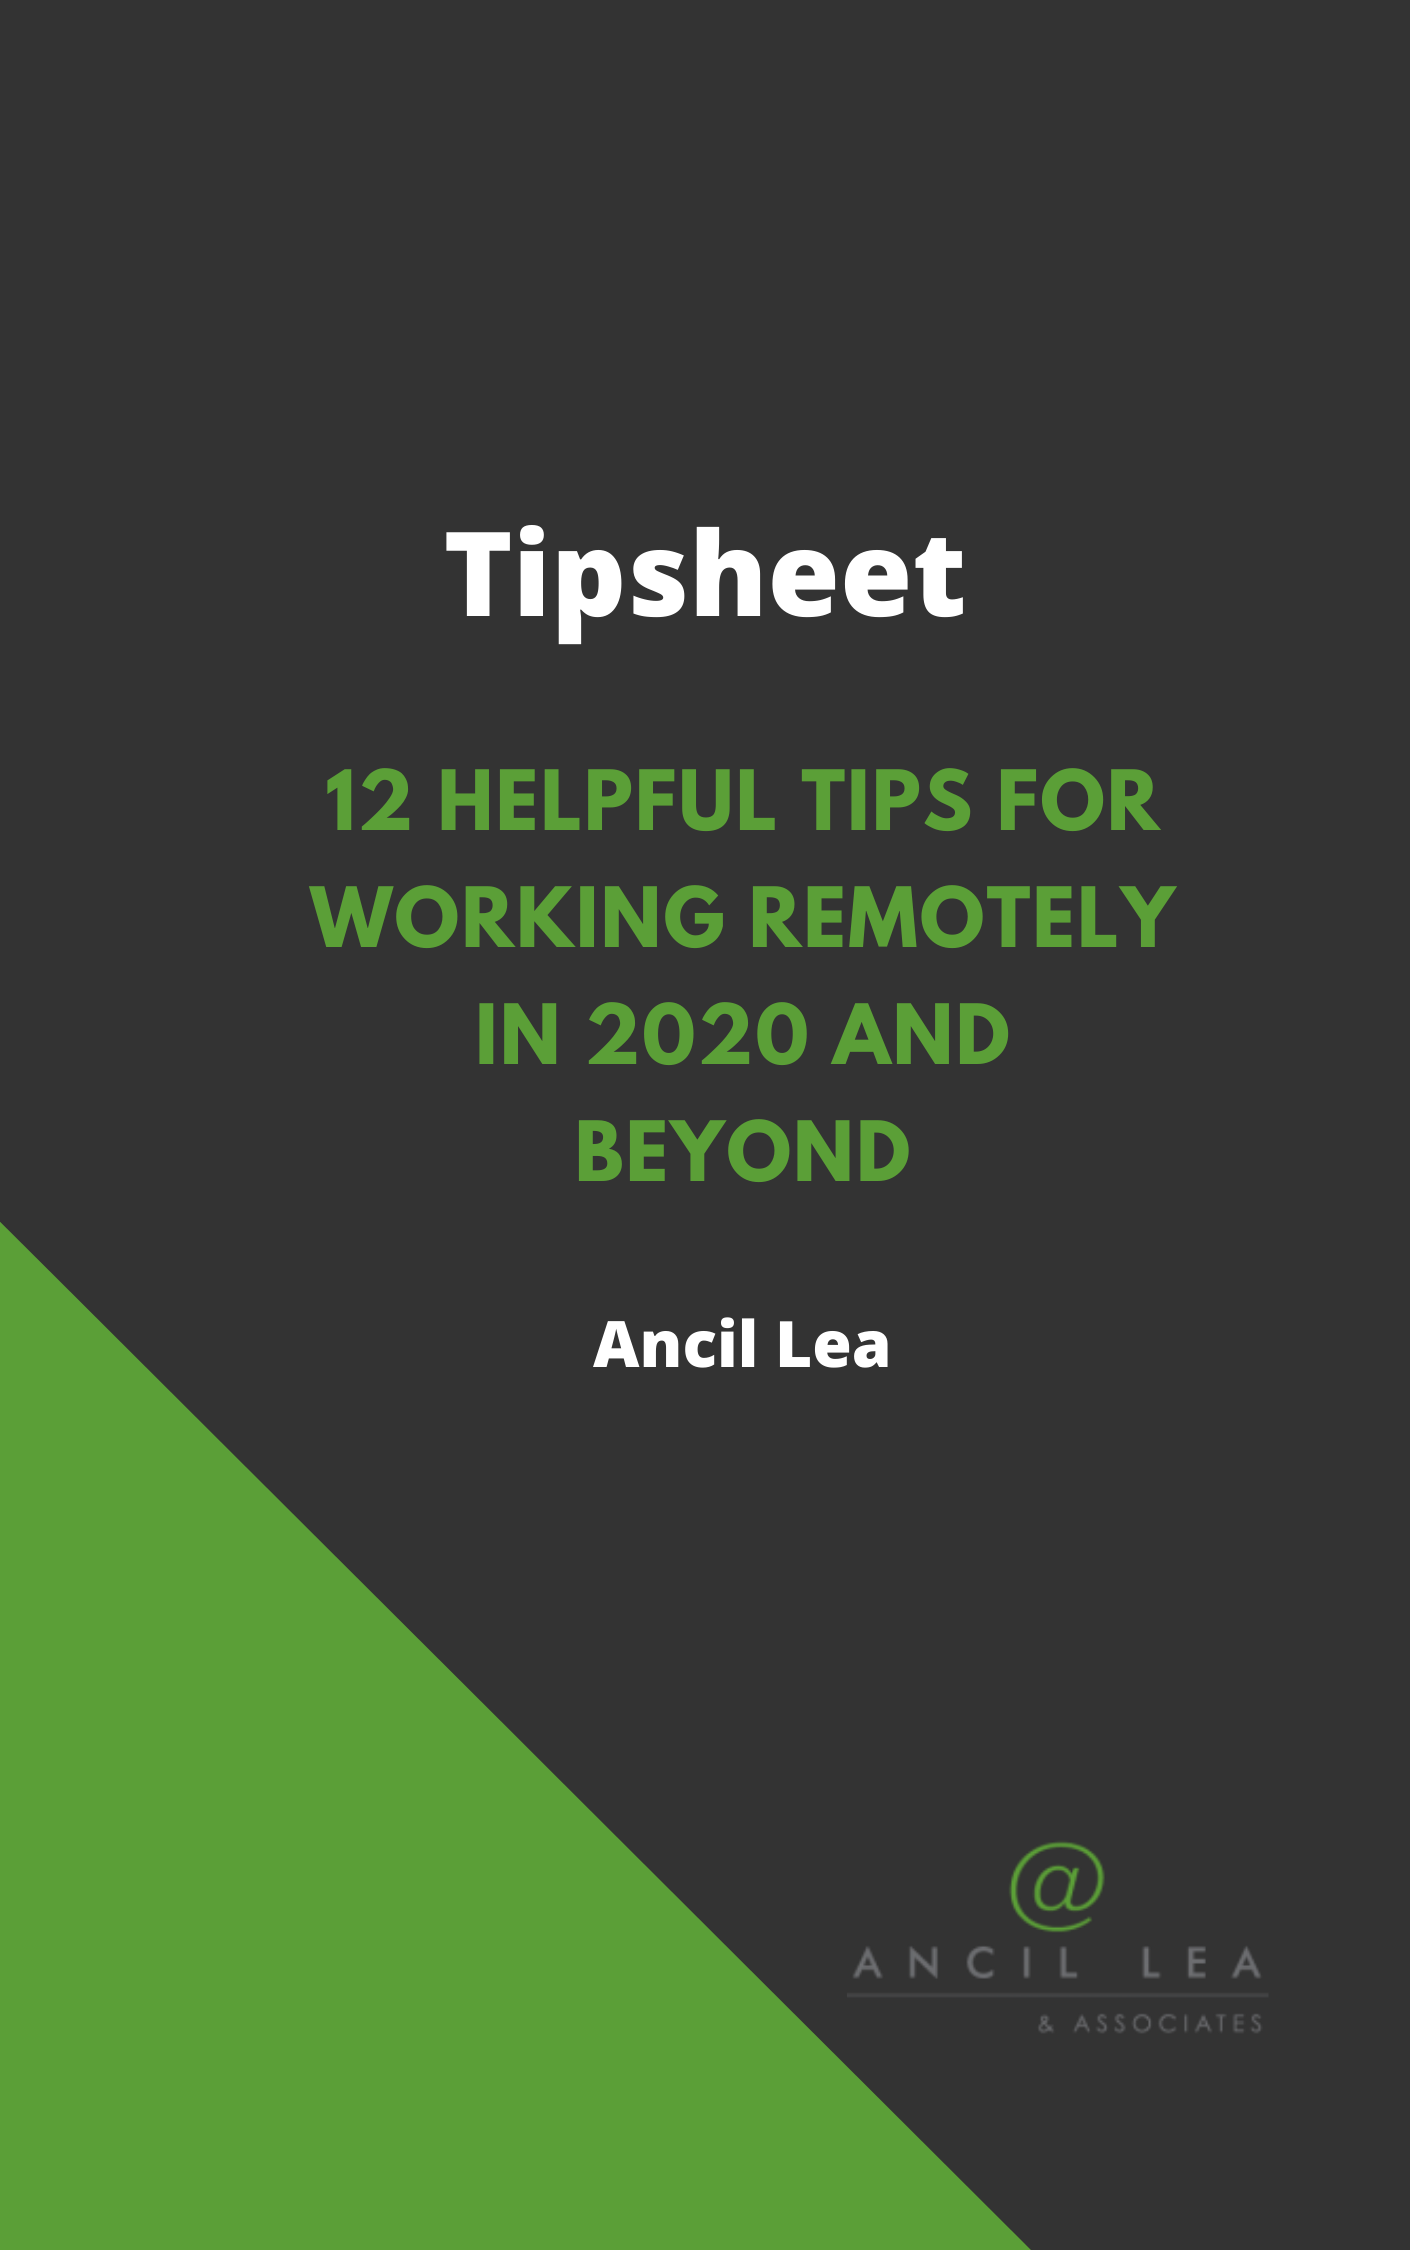 12 Helpful tips for working remotely in 2020 and beyond